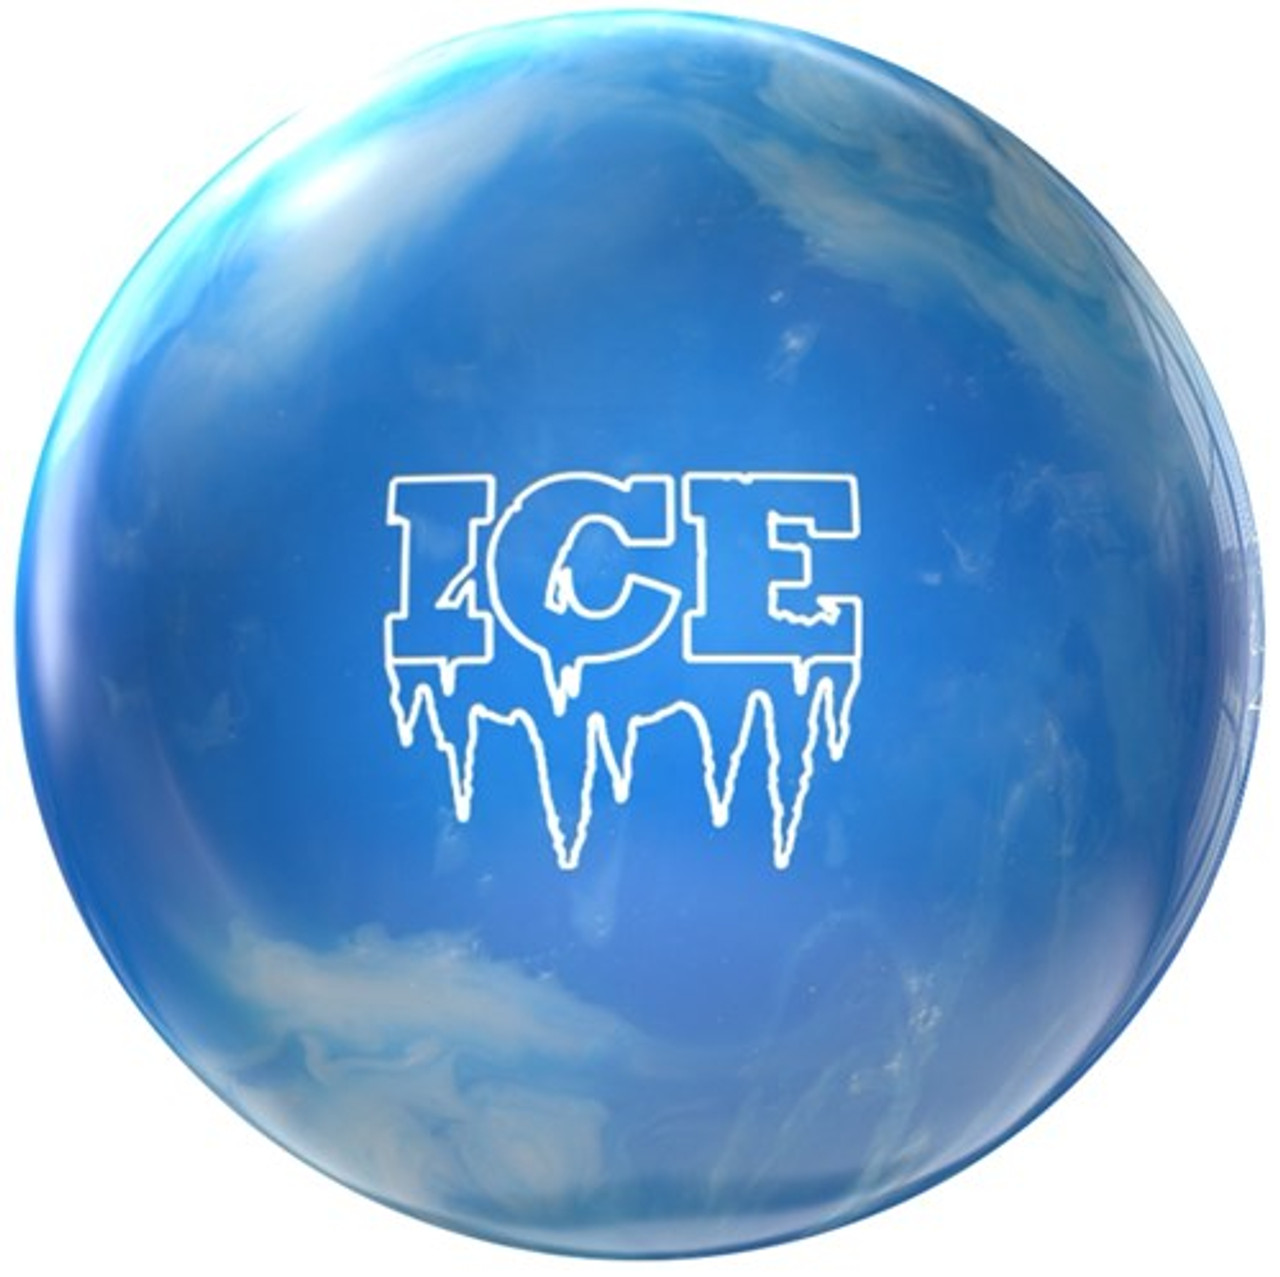 Ice Bowling Bluewhite Storm Free Shipping Ball Nw0Ovm8n